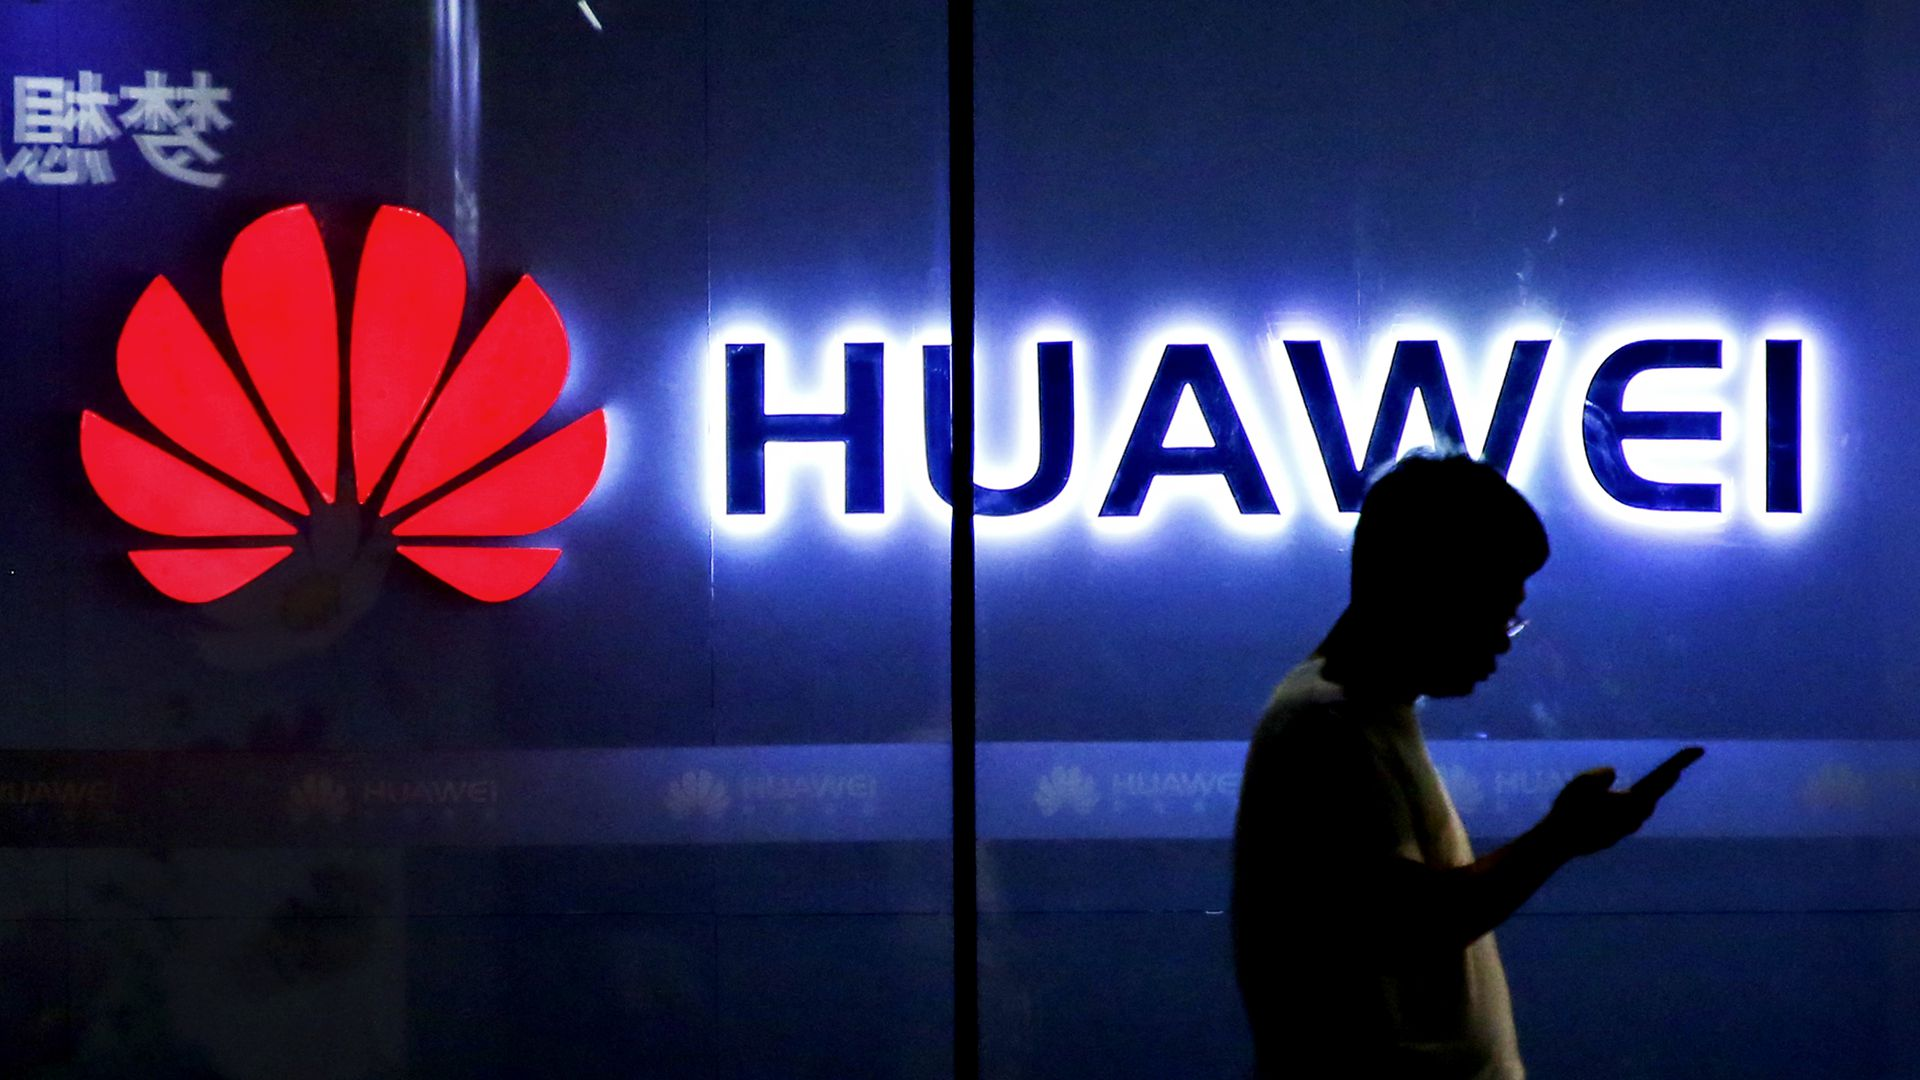 Photo of man using a smartphone silhouetted against a glowing Huawei logo